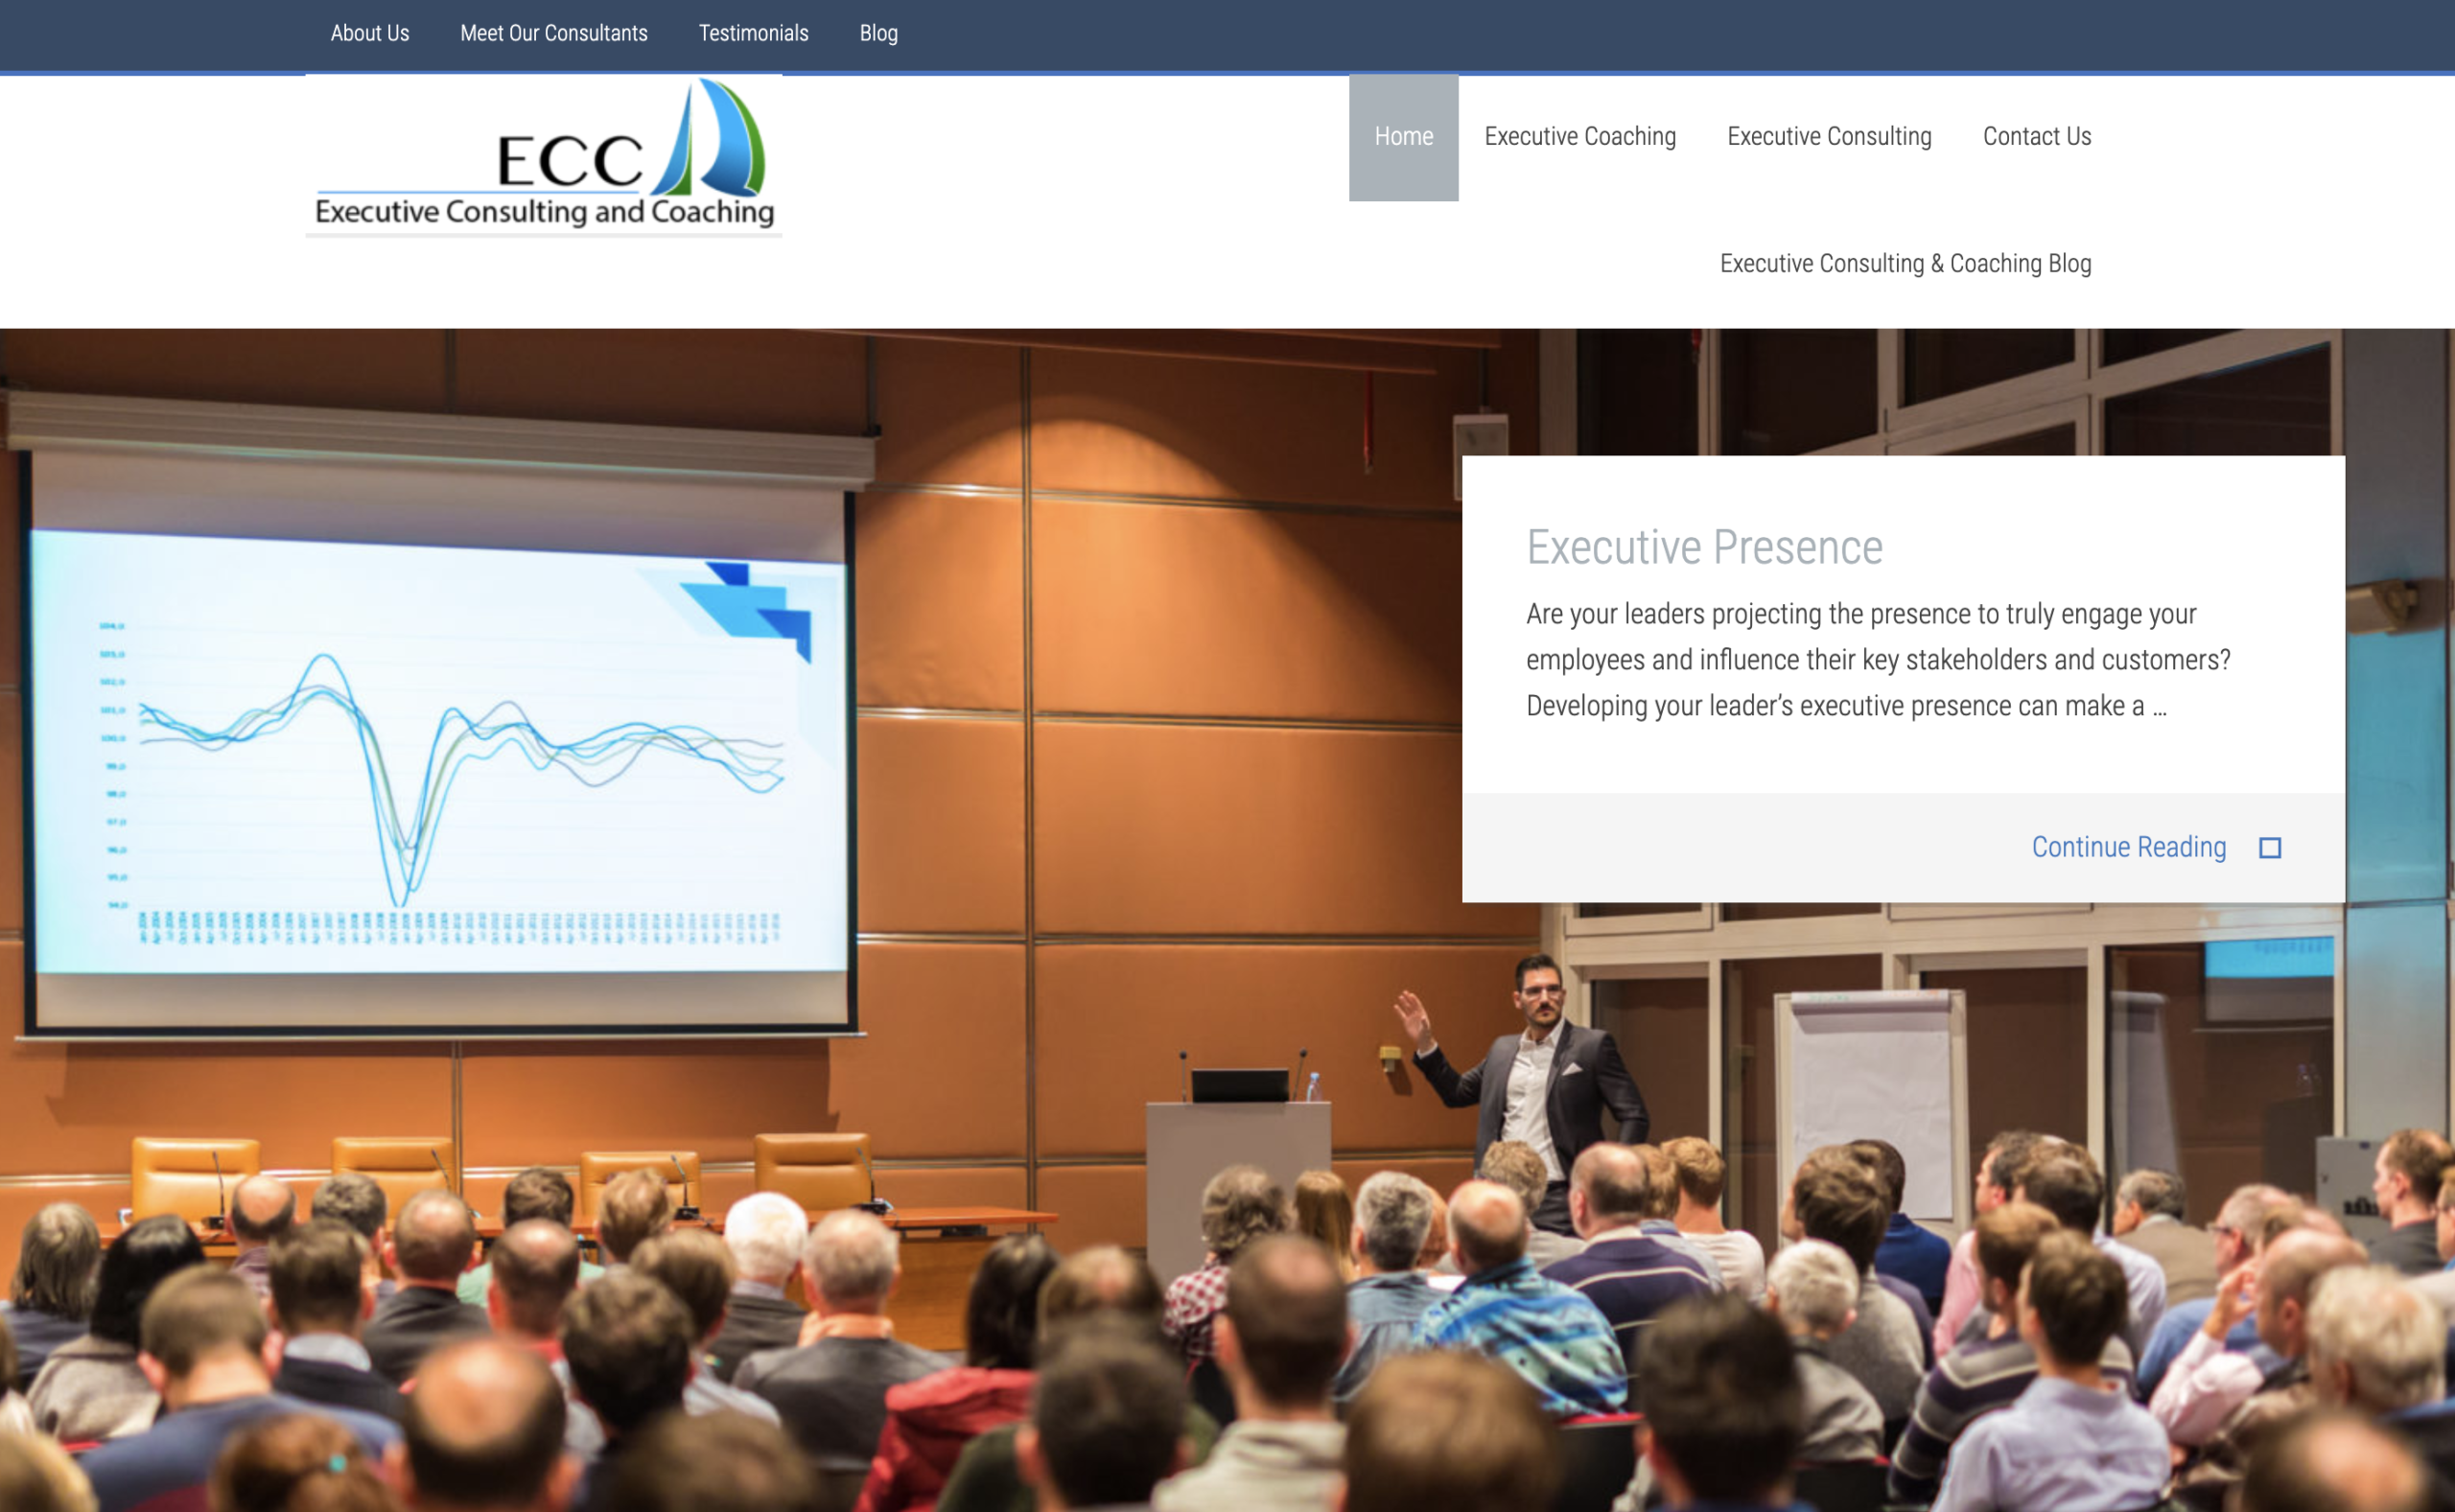 Executive Consulting and Coaching Website